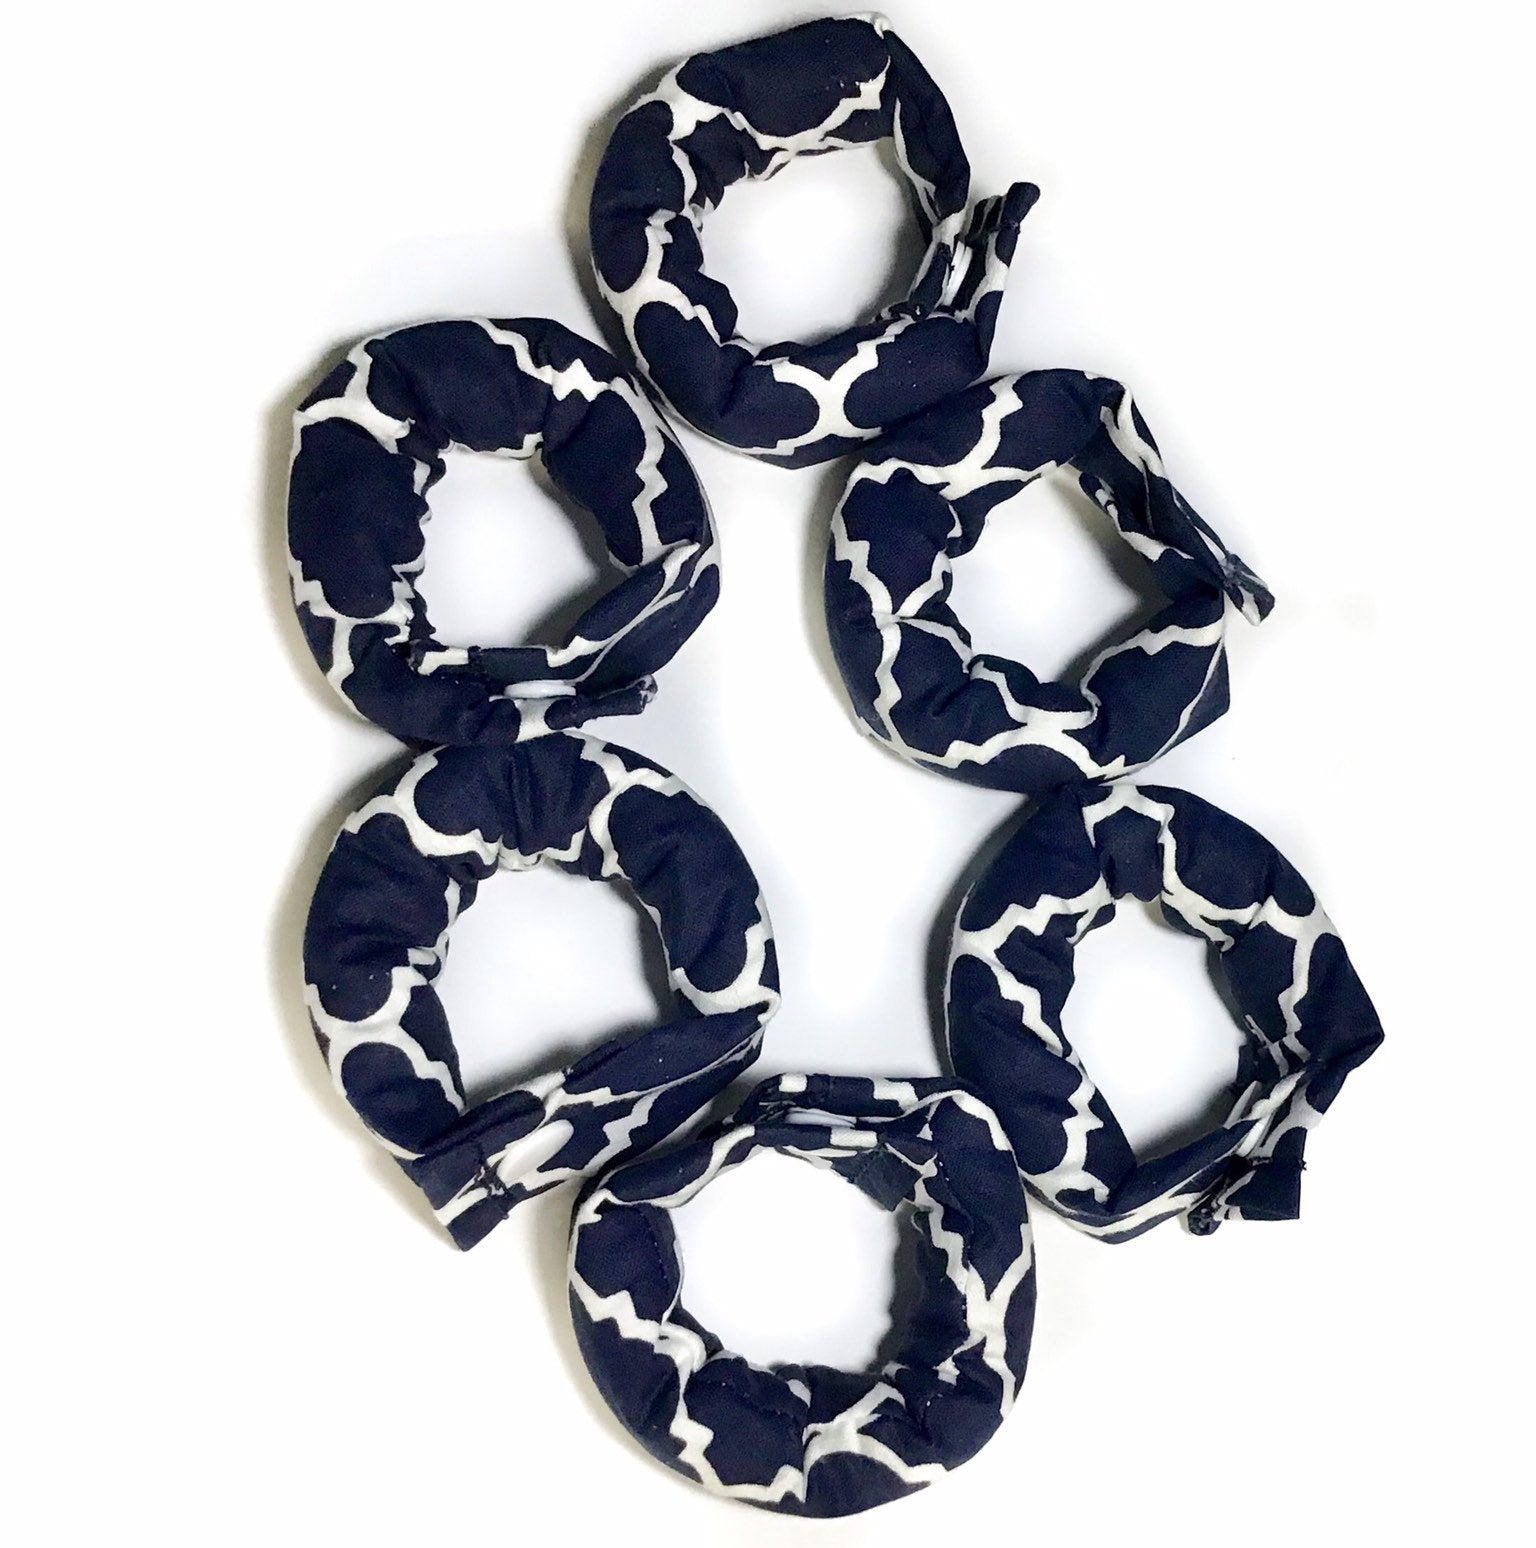 Navy Blue Lattice 1 inch Hair Rollers / Hair Accessories /Soft Hair Curlers - My Easy Curls